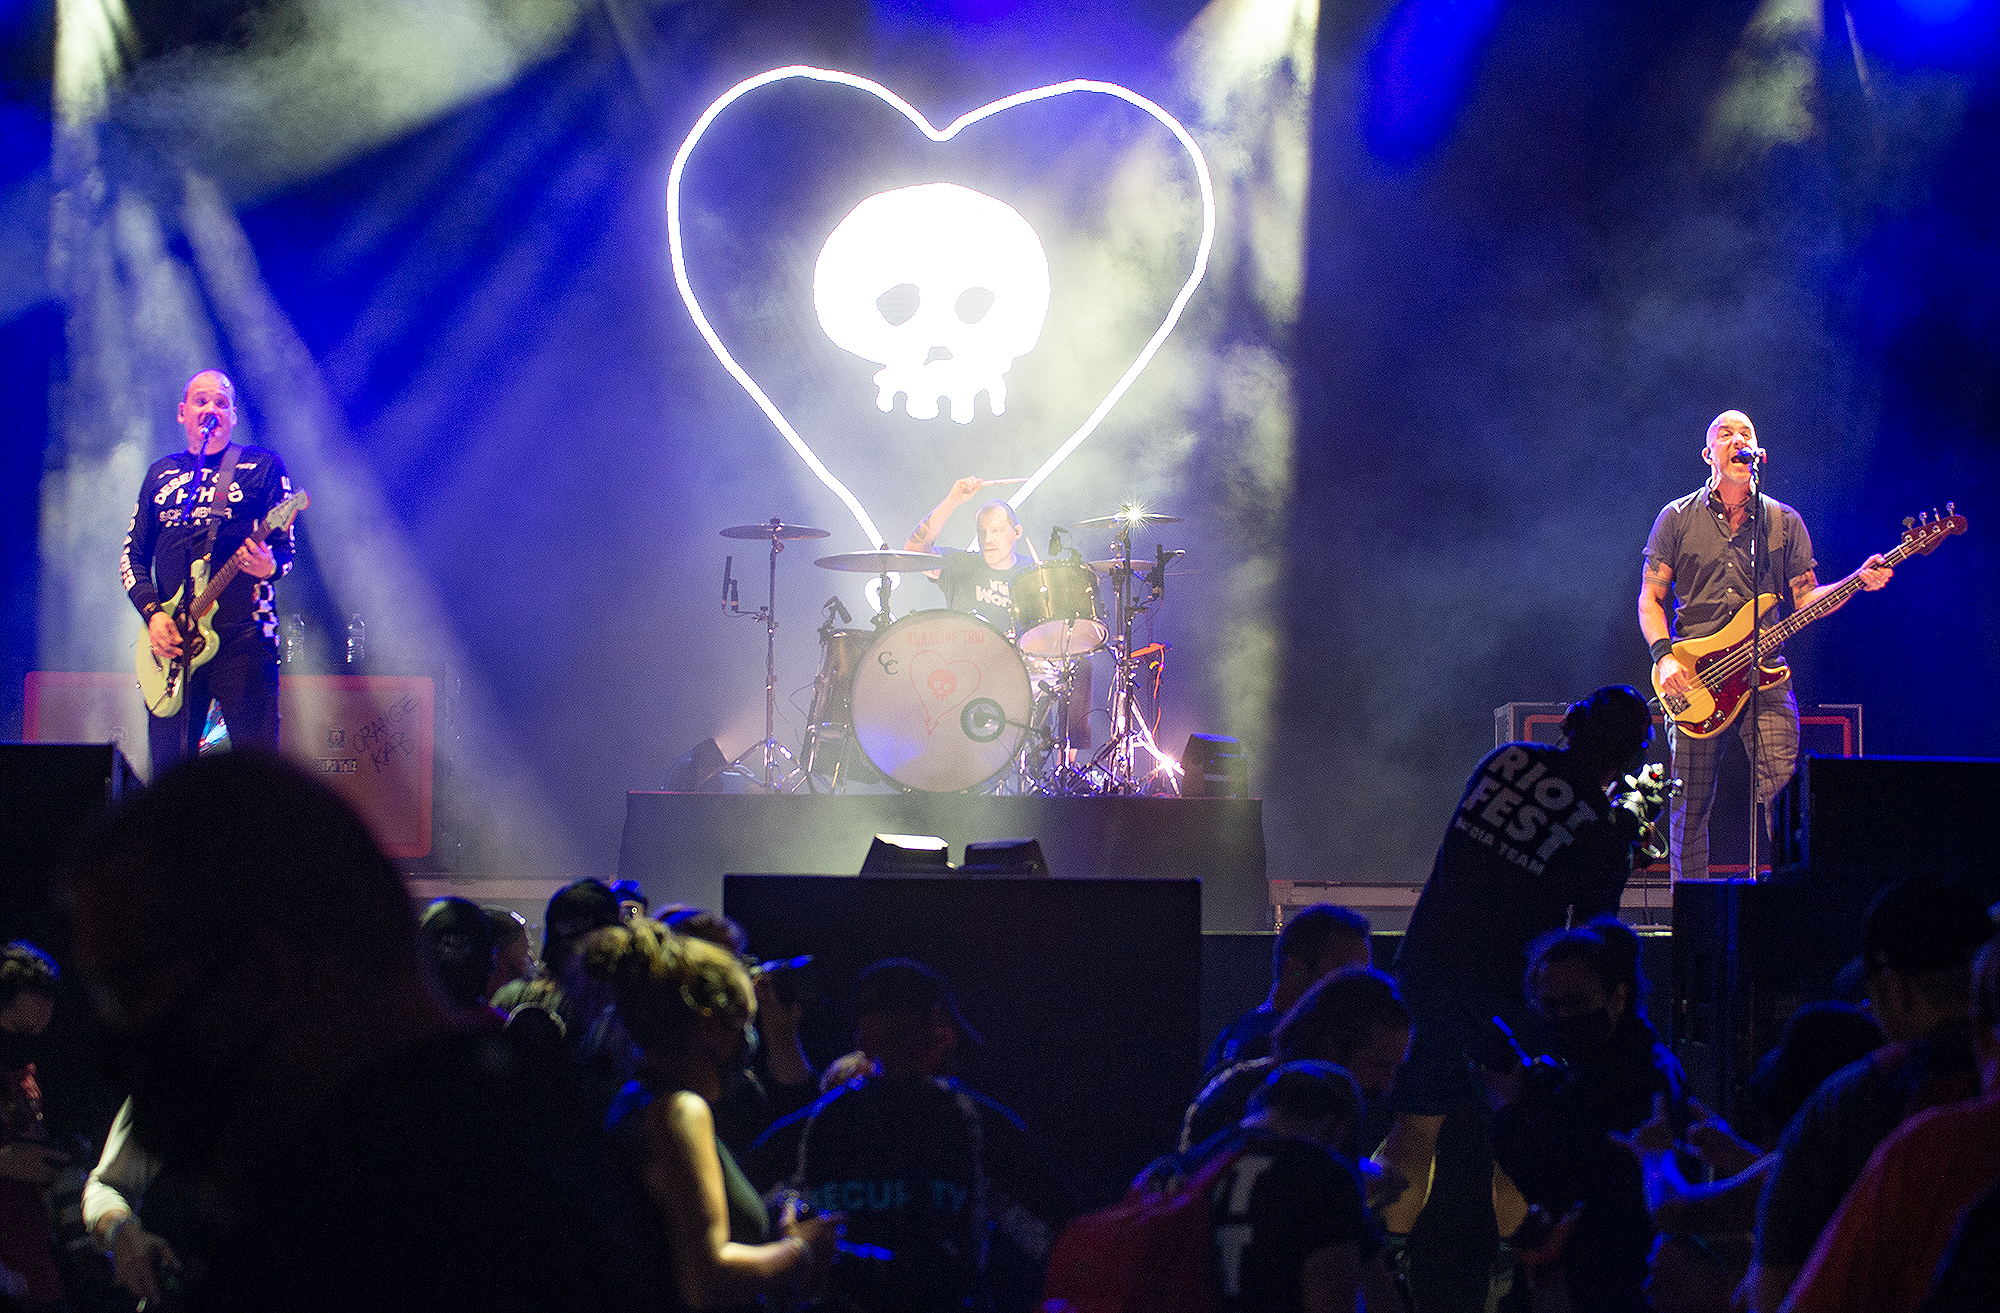 The Alkaline Trio photographed at Riot Fest 2021